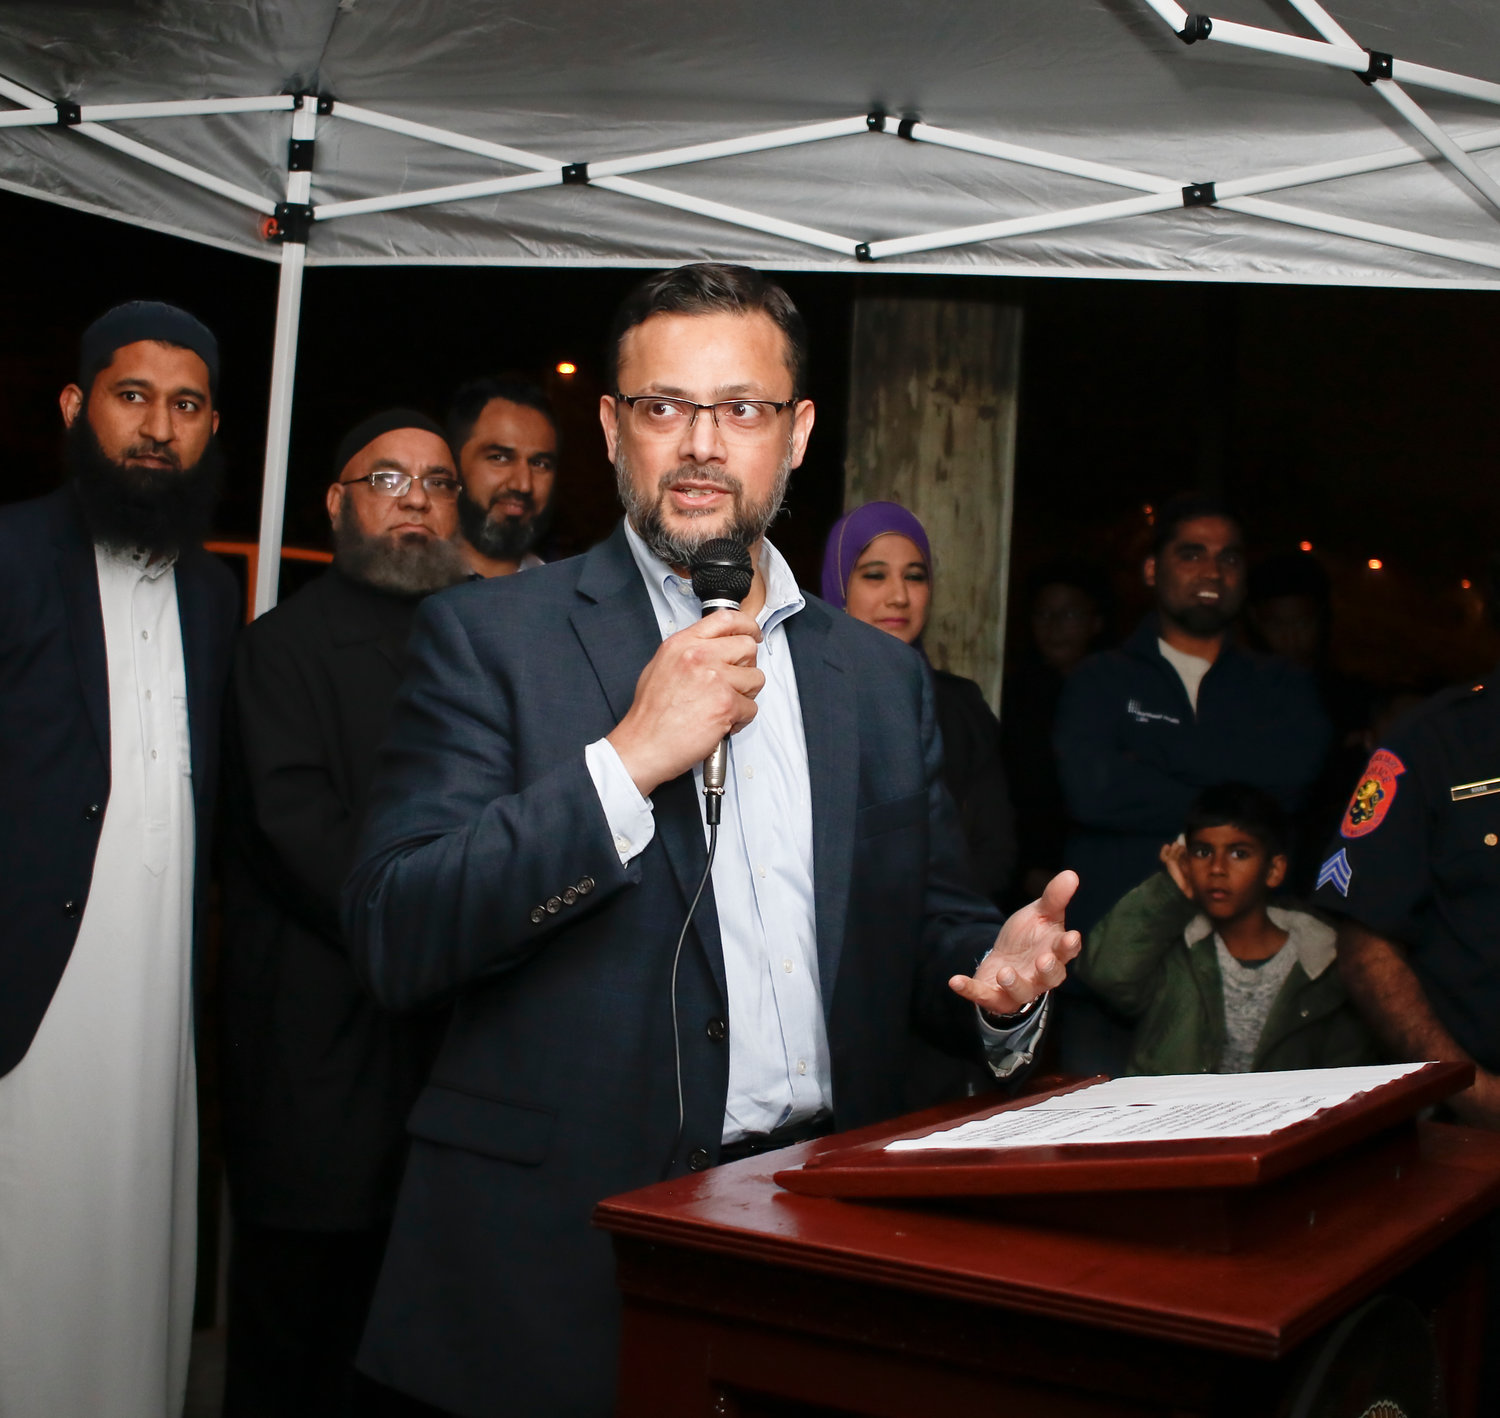 Ahsan Syed, president of Masjid Hamza offered words of thanks to the village for making the event possible.